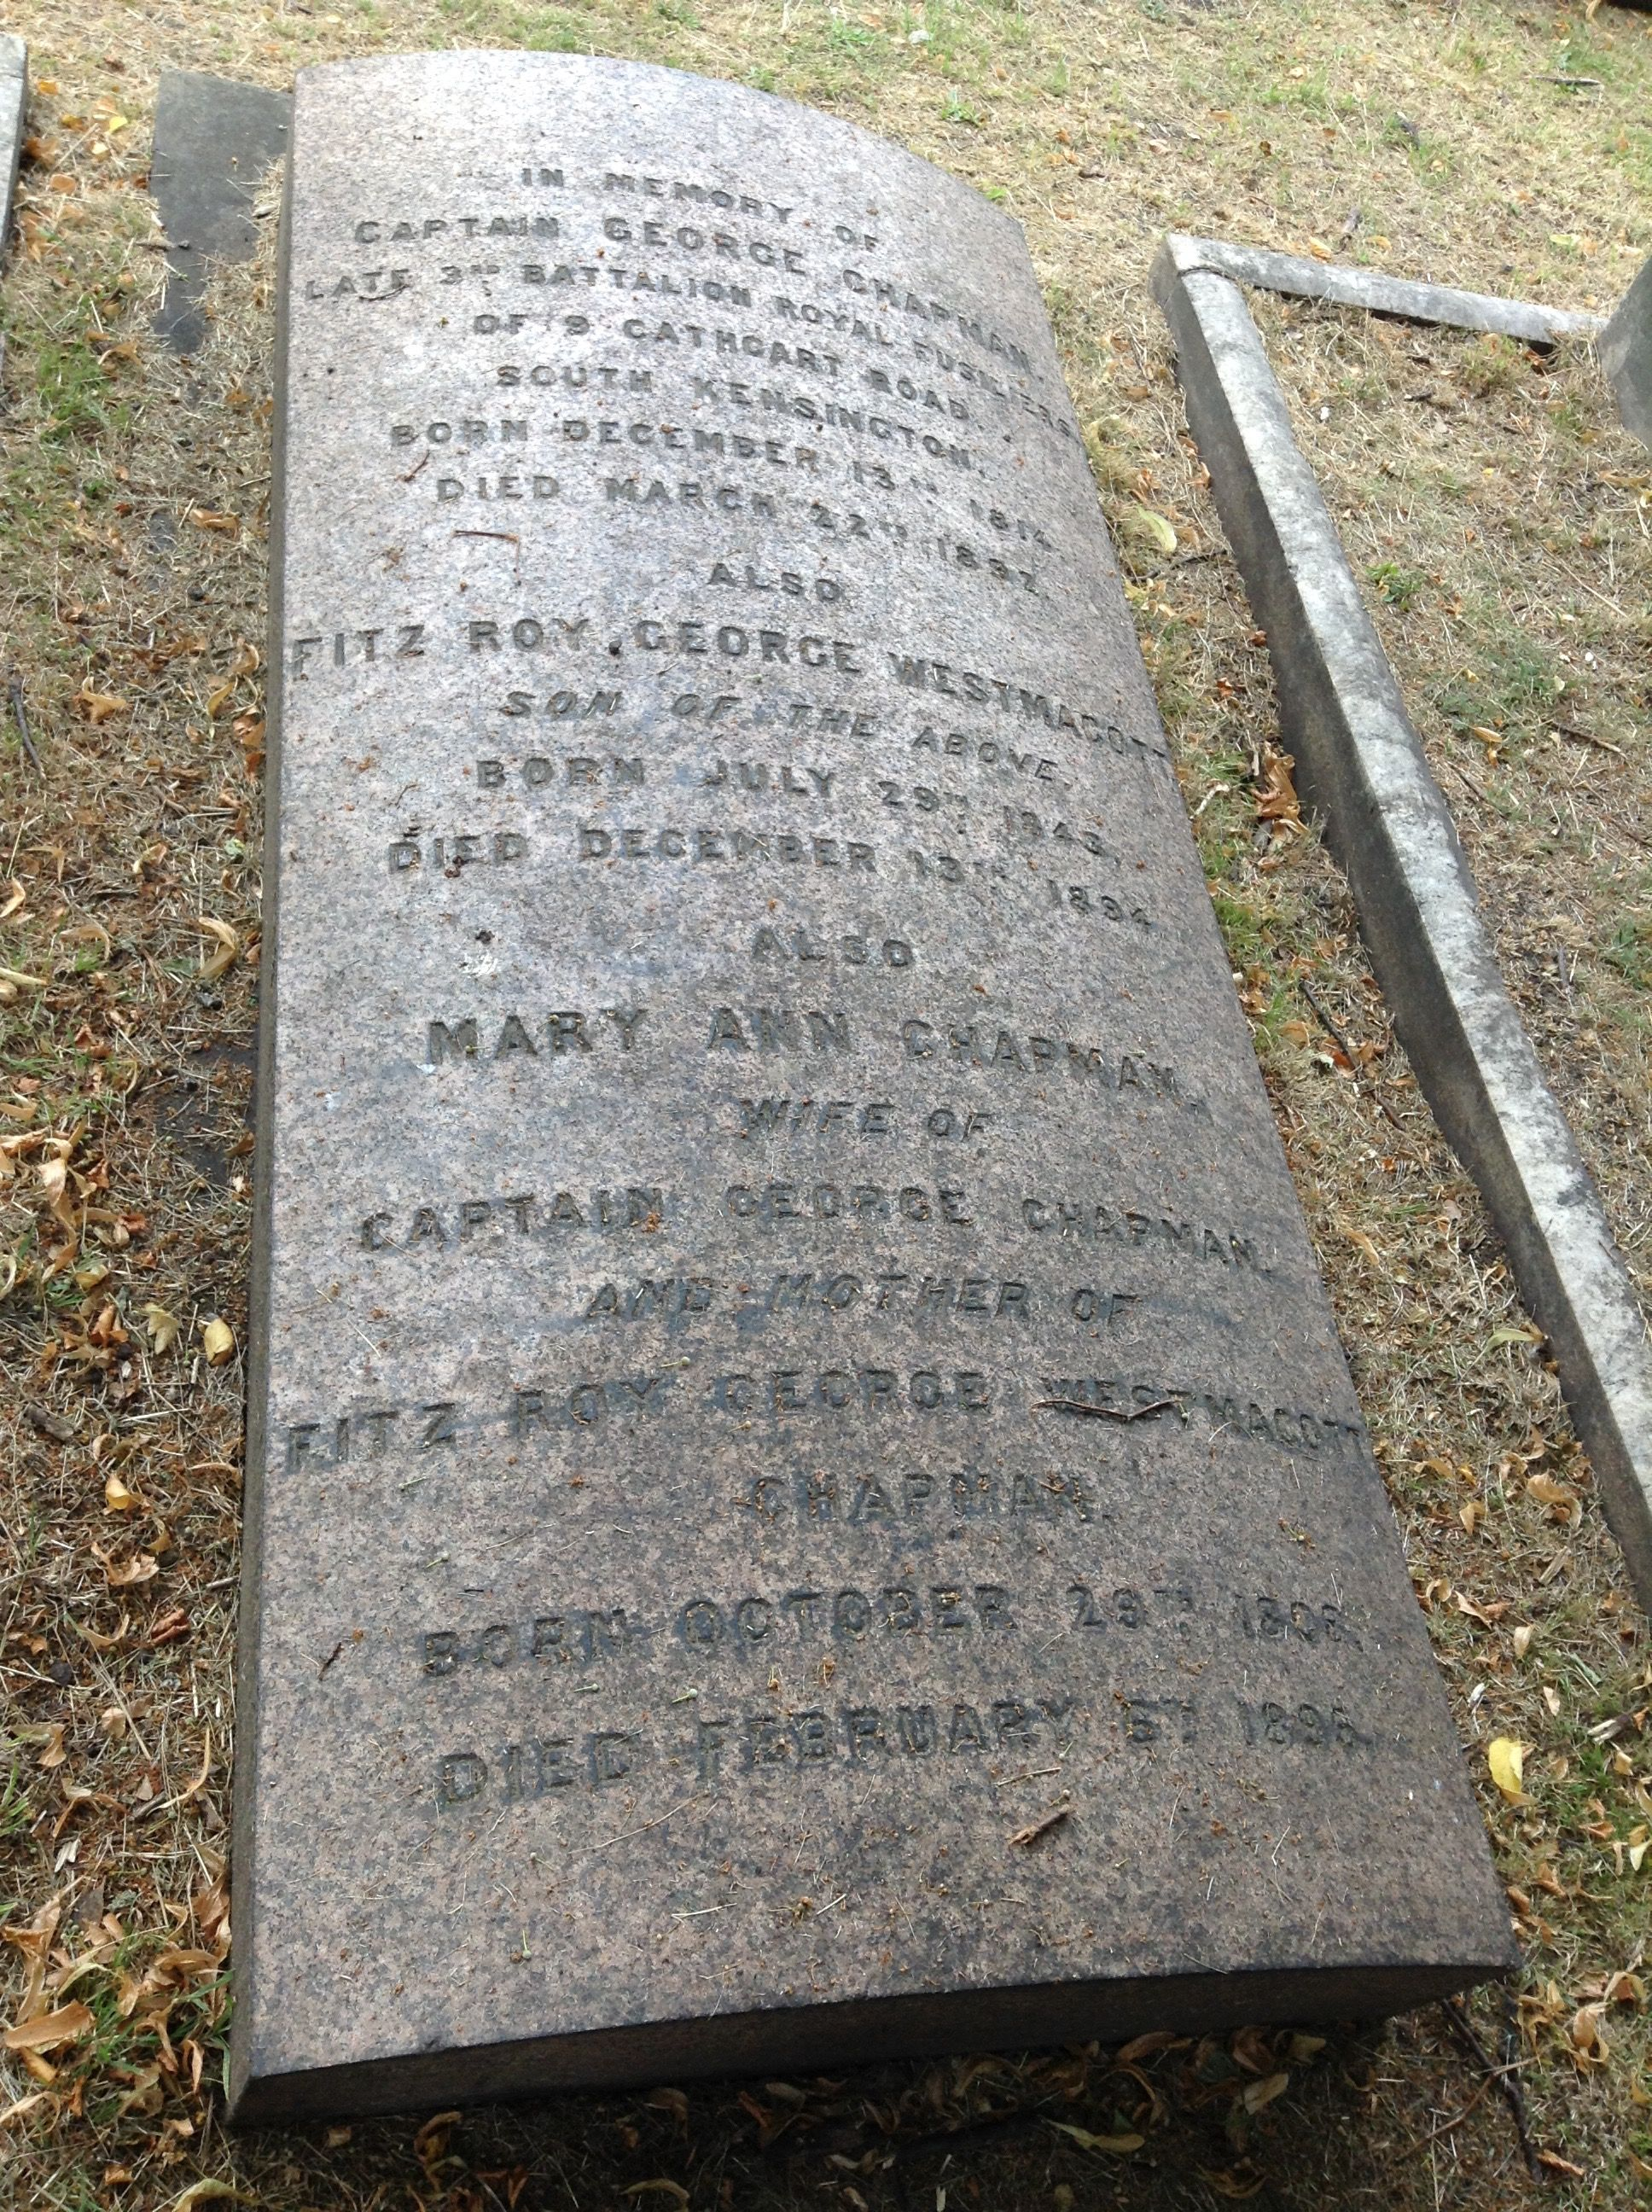 The tomb of Captain George Chapman, late 2nd Battalion Royal Fusiliers of 9 Cathcart Road, South Kensington, born 13 Dec 1814, died 22 Mar 1897.  Also of Fitz Roy George Westmacott Chapman, son, born 29 Jul 1843, died 13 Dec 1894.  Also of Mary Ann Chapman wife of Captain George Chapman and mother of Fitz Roy George Westmacott Chapman, born 29 Oct 1808, died 6 Feb 1896.